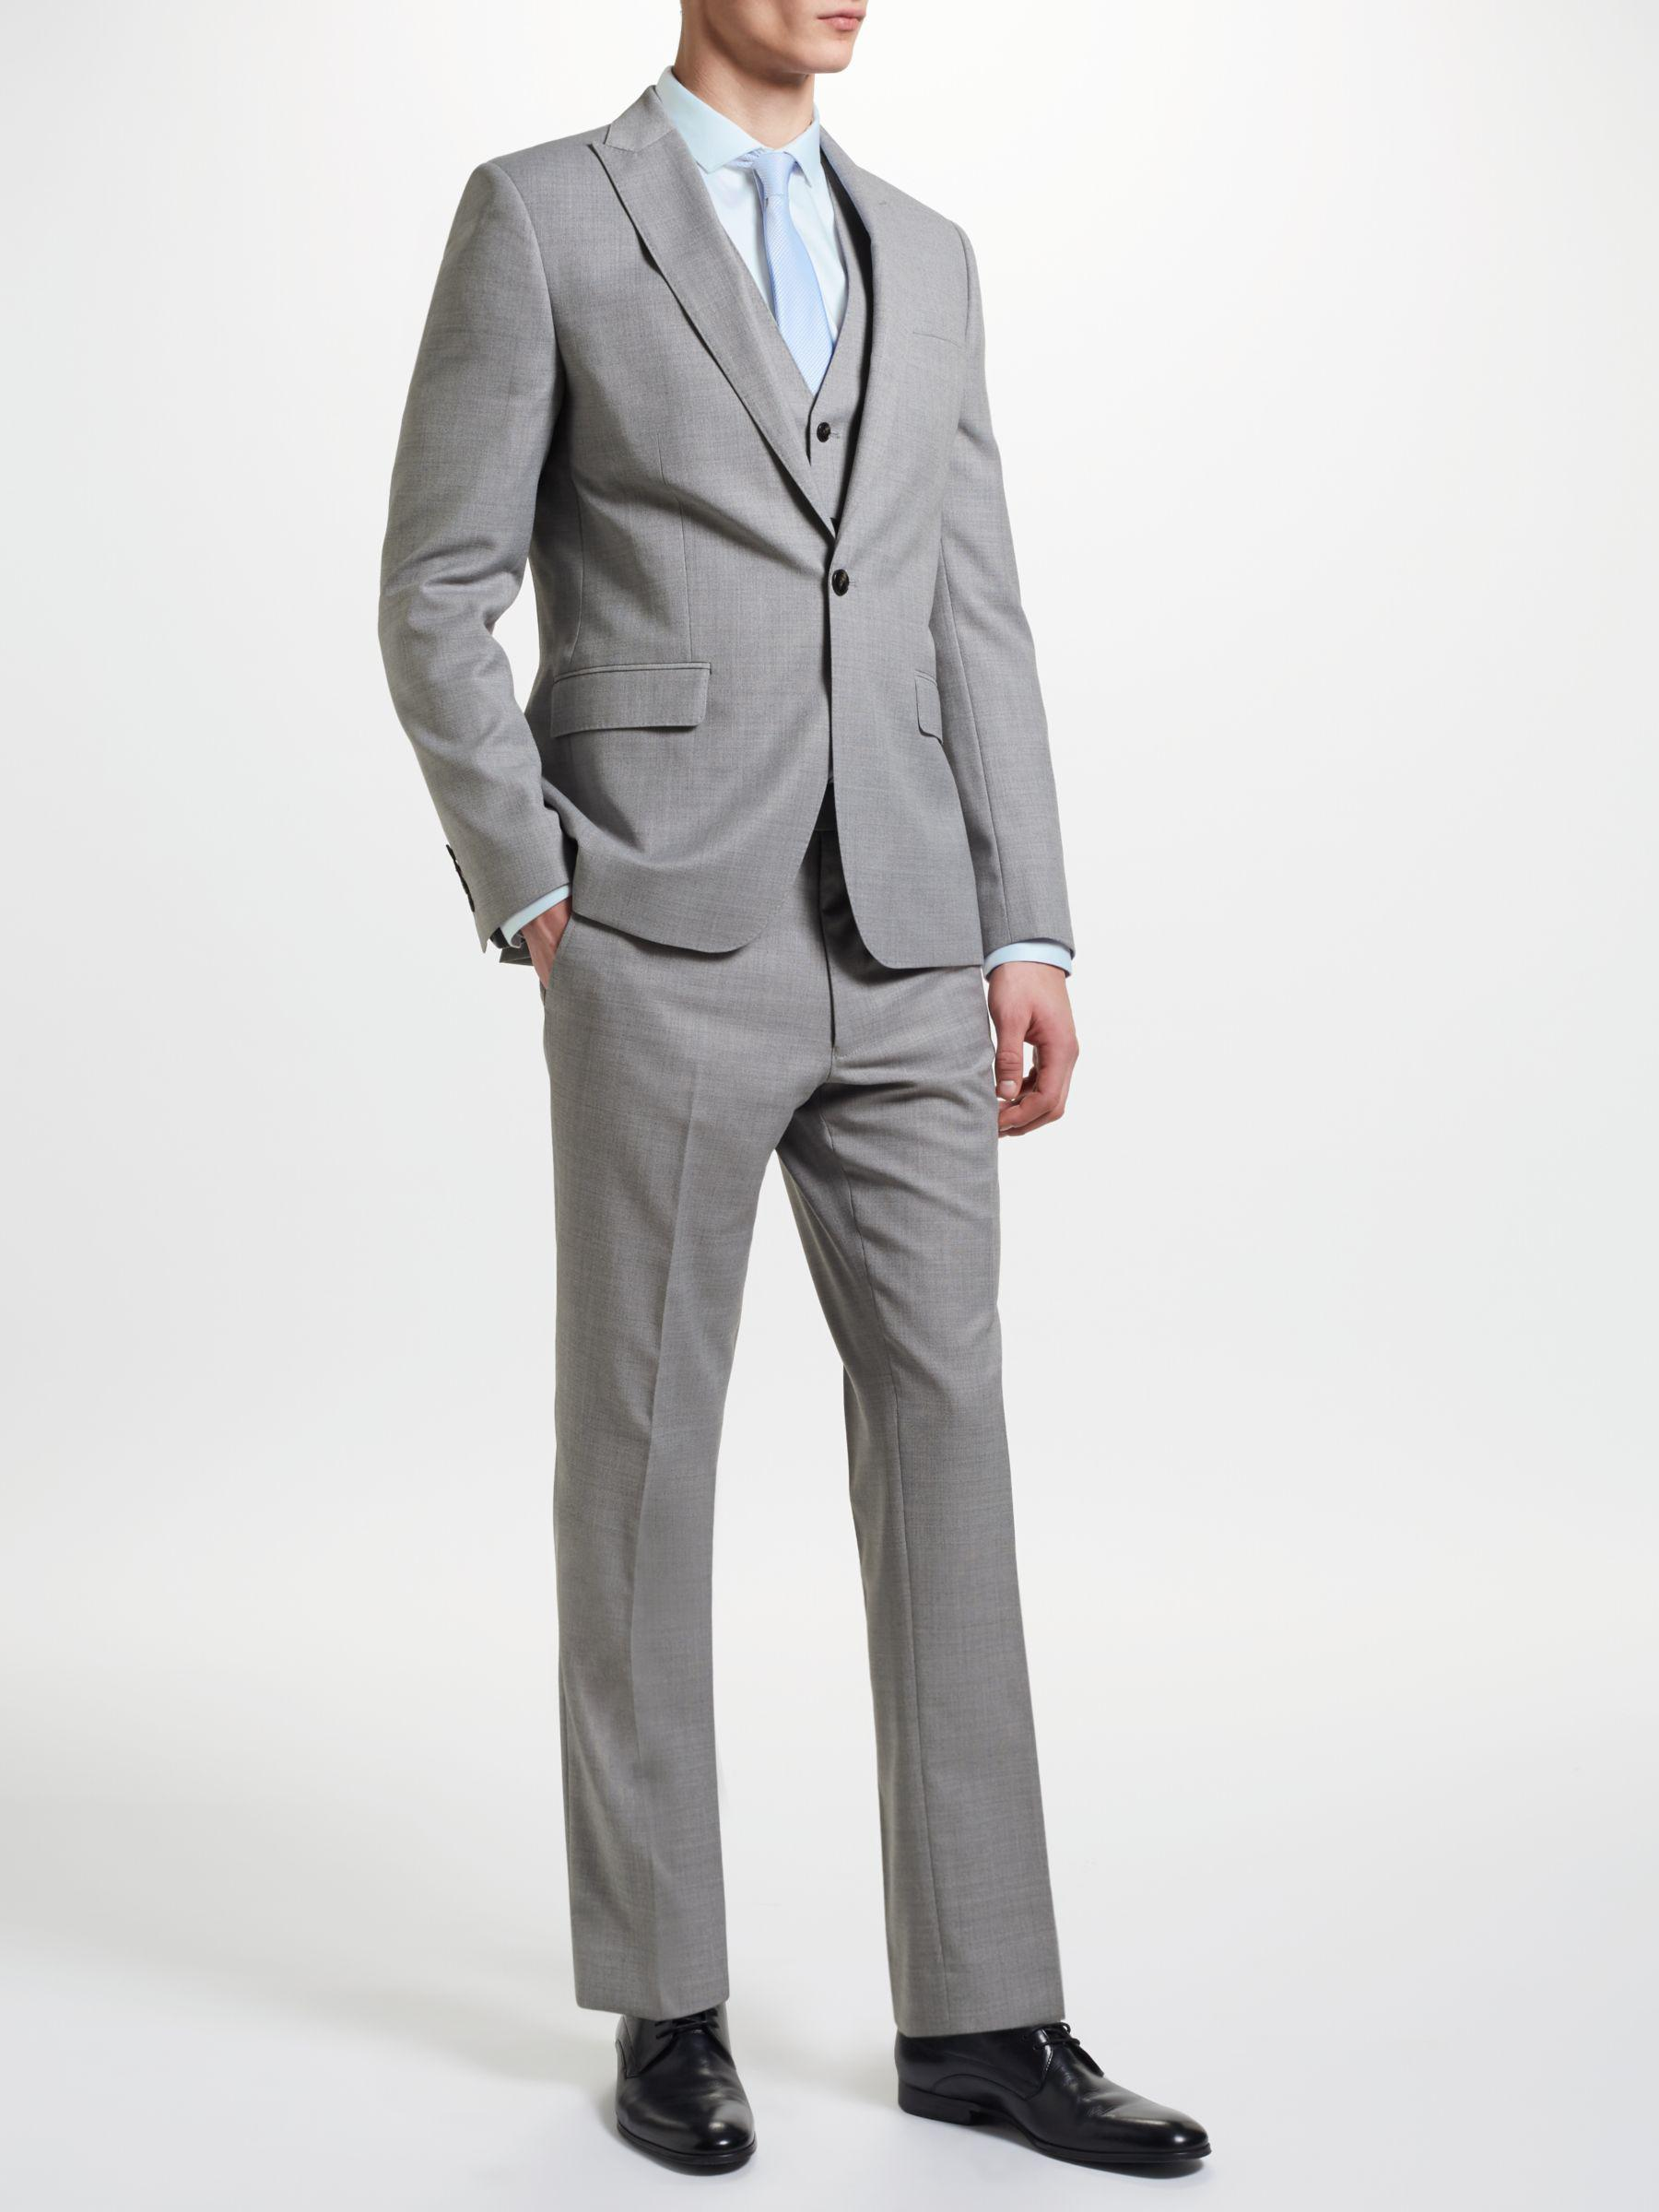 397e242e530 John Lewis Kin By Crepe Slim Fit Suit Jacket in Gray for Men - Lyst